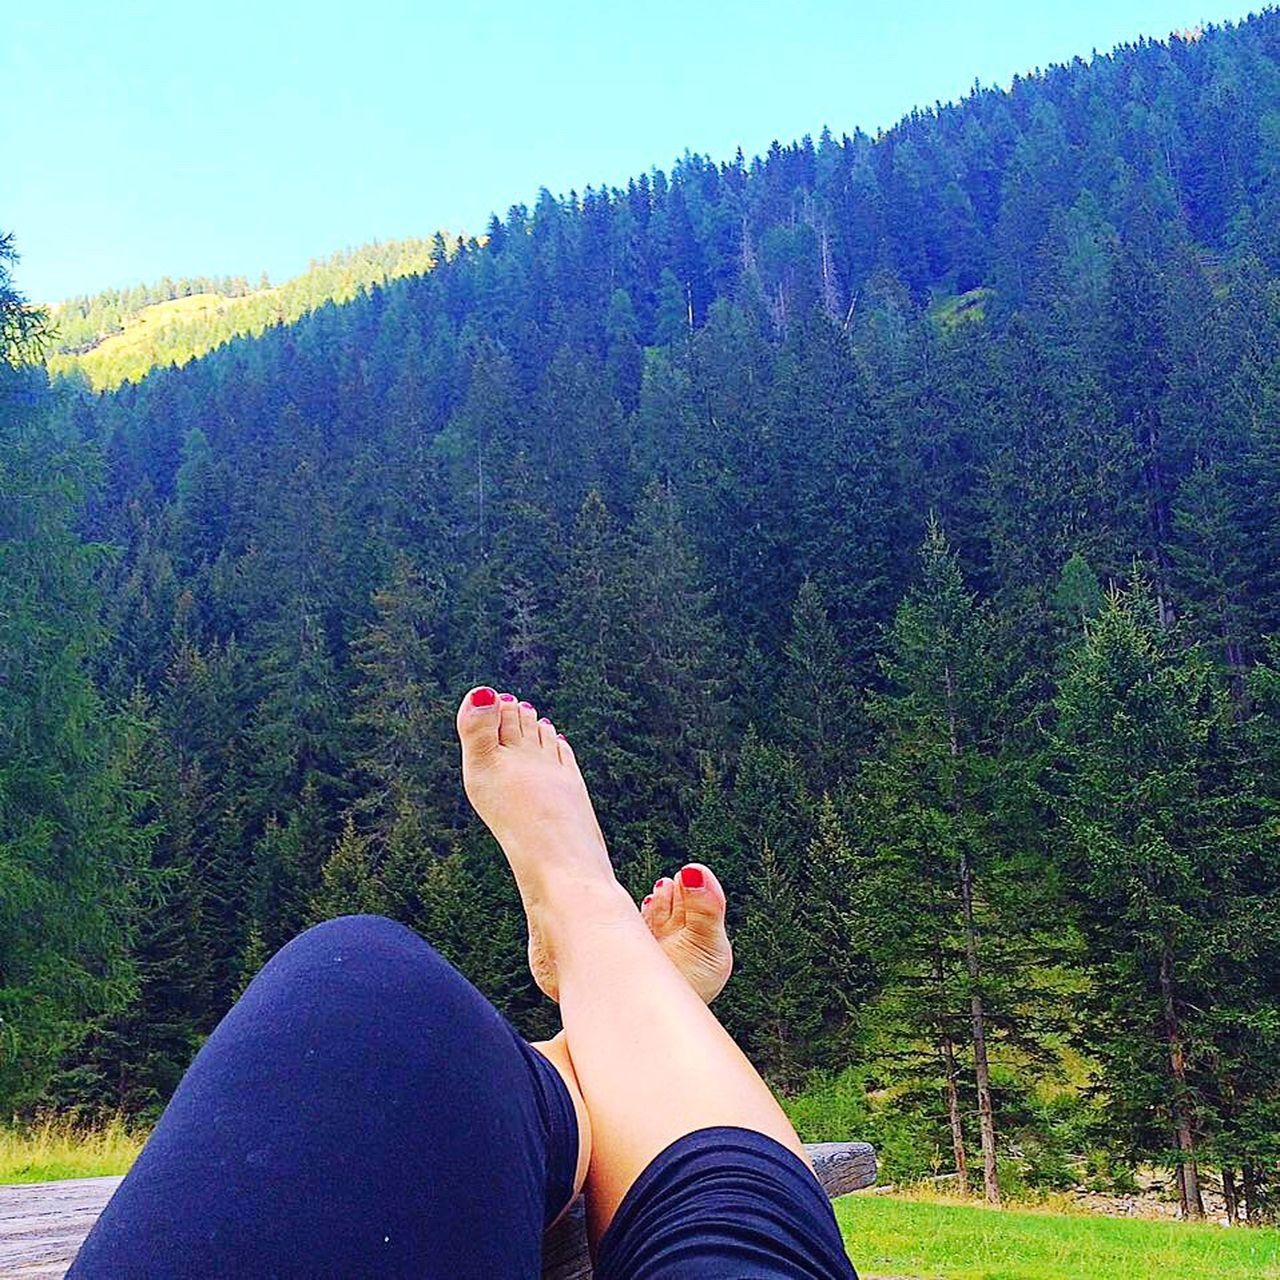 Chillaxing Feeling Thankful Tranquil Scene No People Personal Perspective Low Section Human Body Part Human Foot Human Leg Lifestyles Barefoot One Person Real People Women Leisure Activity Outdoors Day Tree Nail Polish People Nature Beauty In Nature Adult Sky Vejo